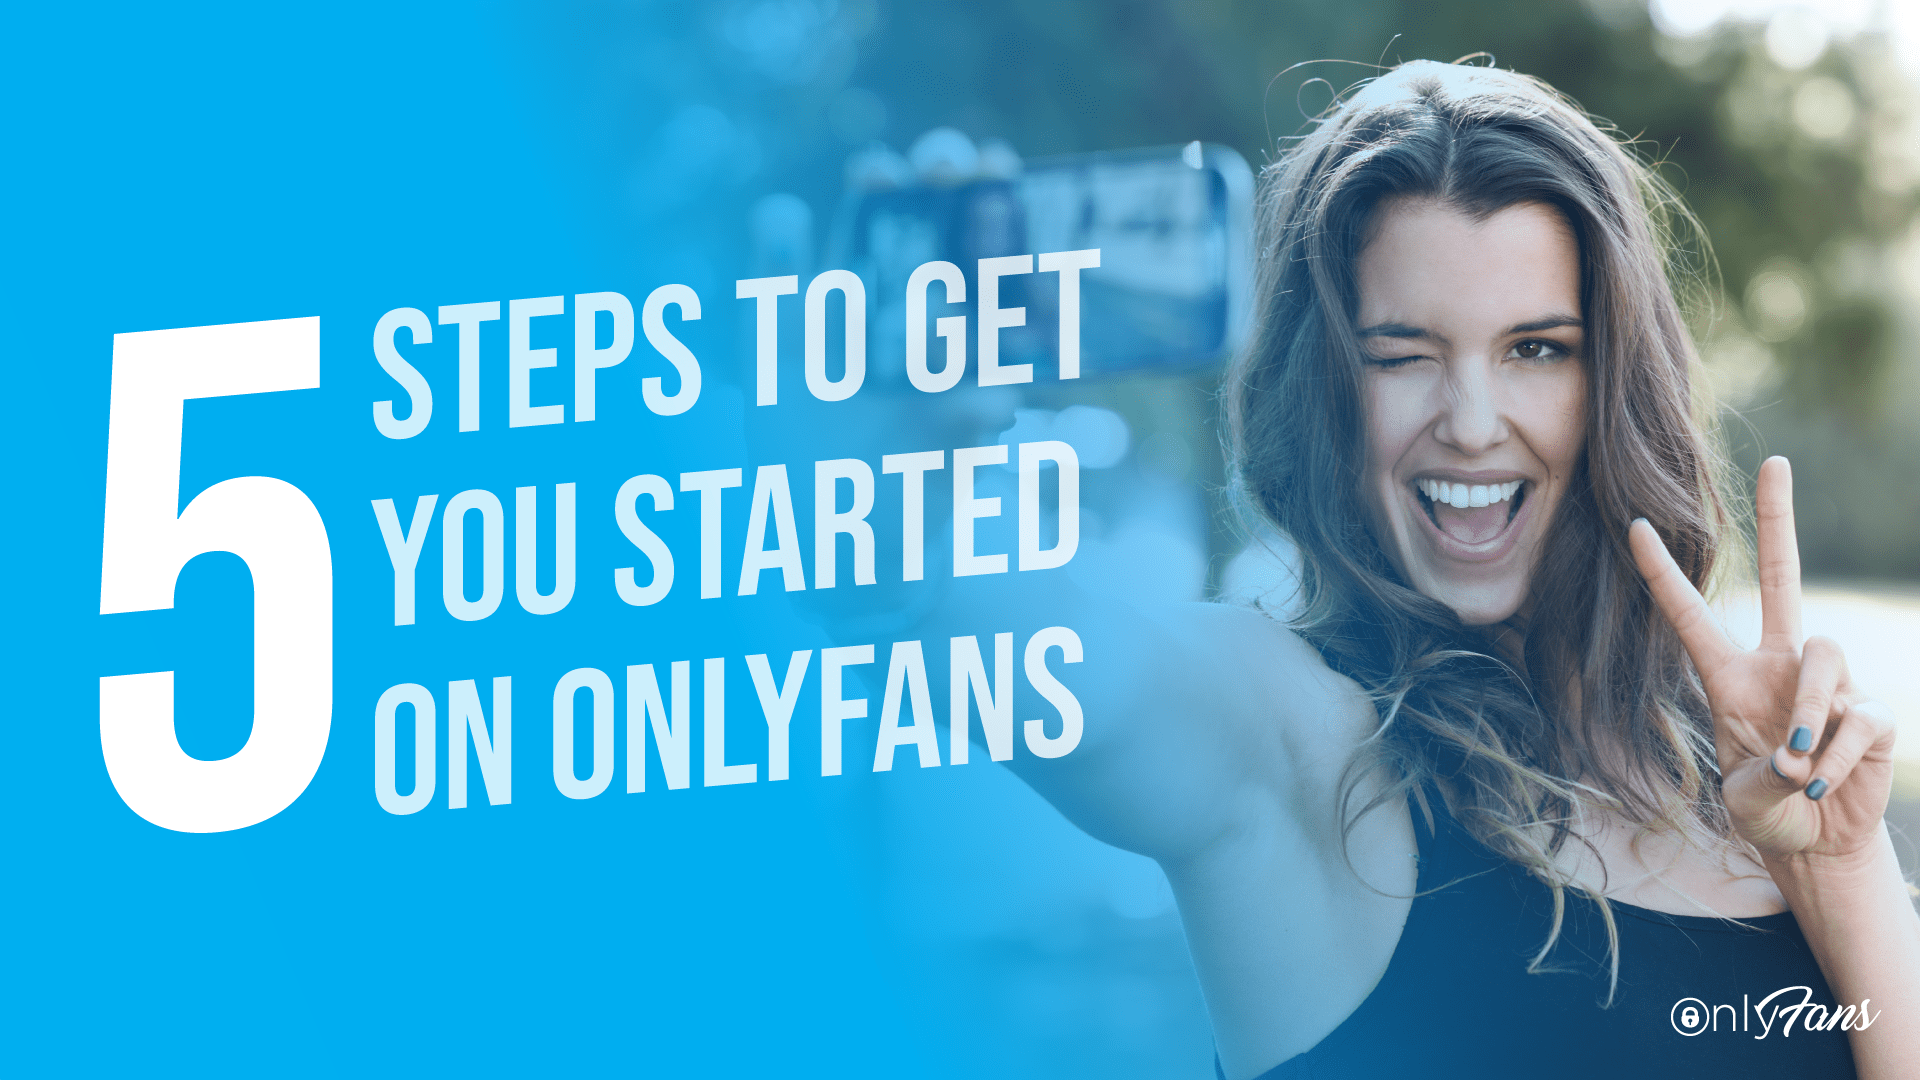 5 steps for getting started on onlyfans » onlyfans